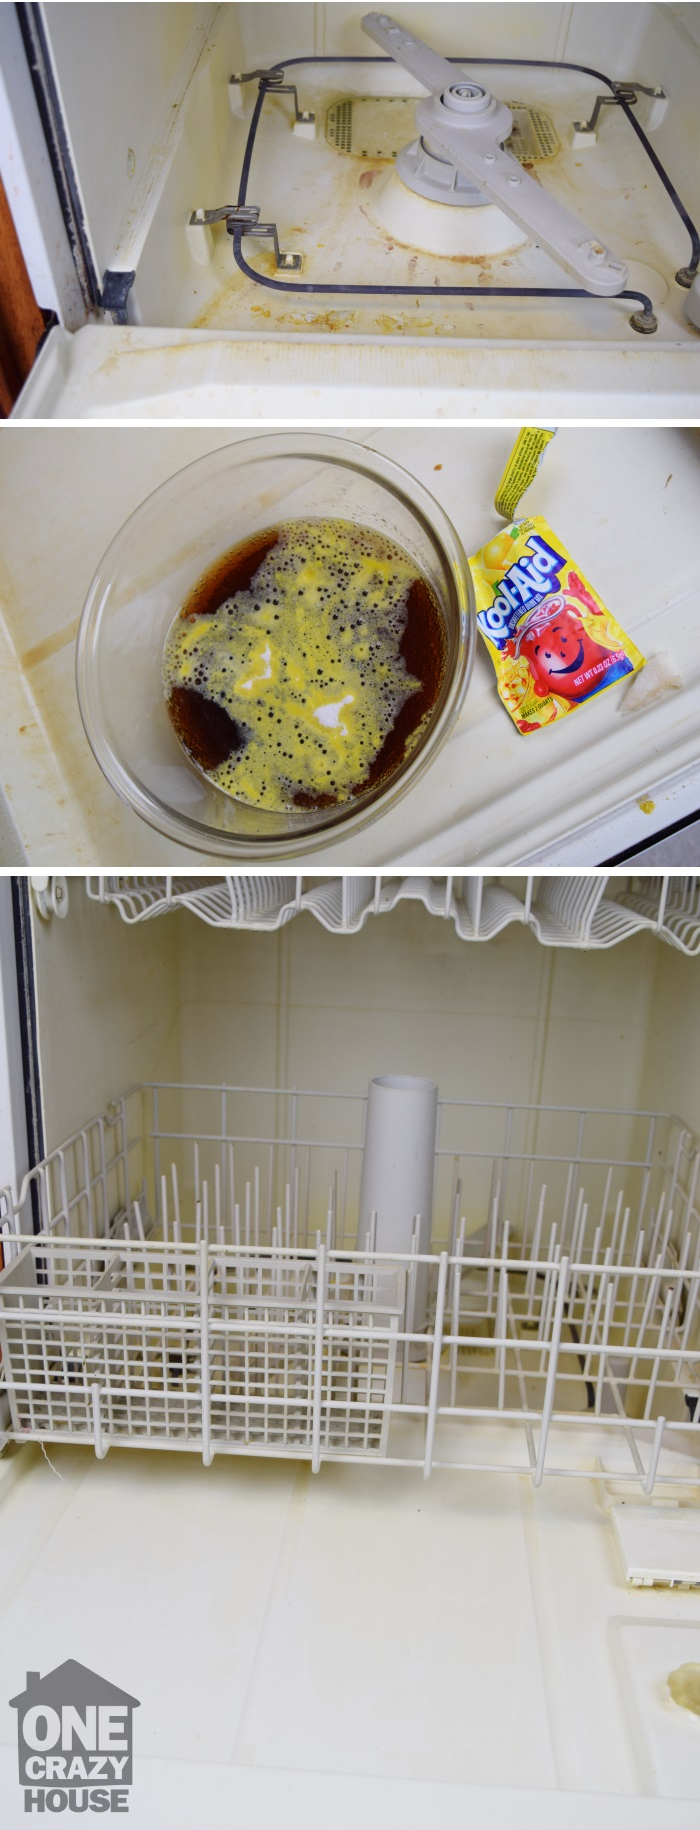 How To Clean A Gross Dishwasher